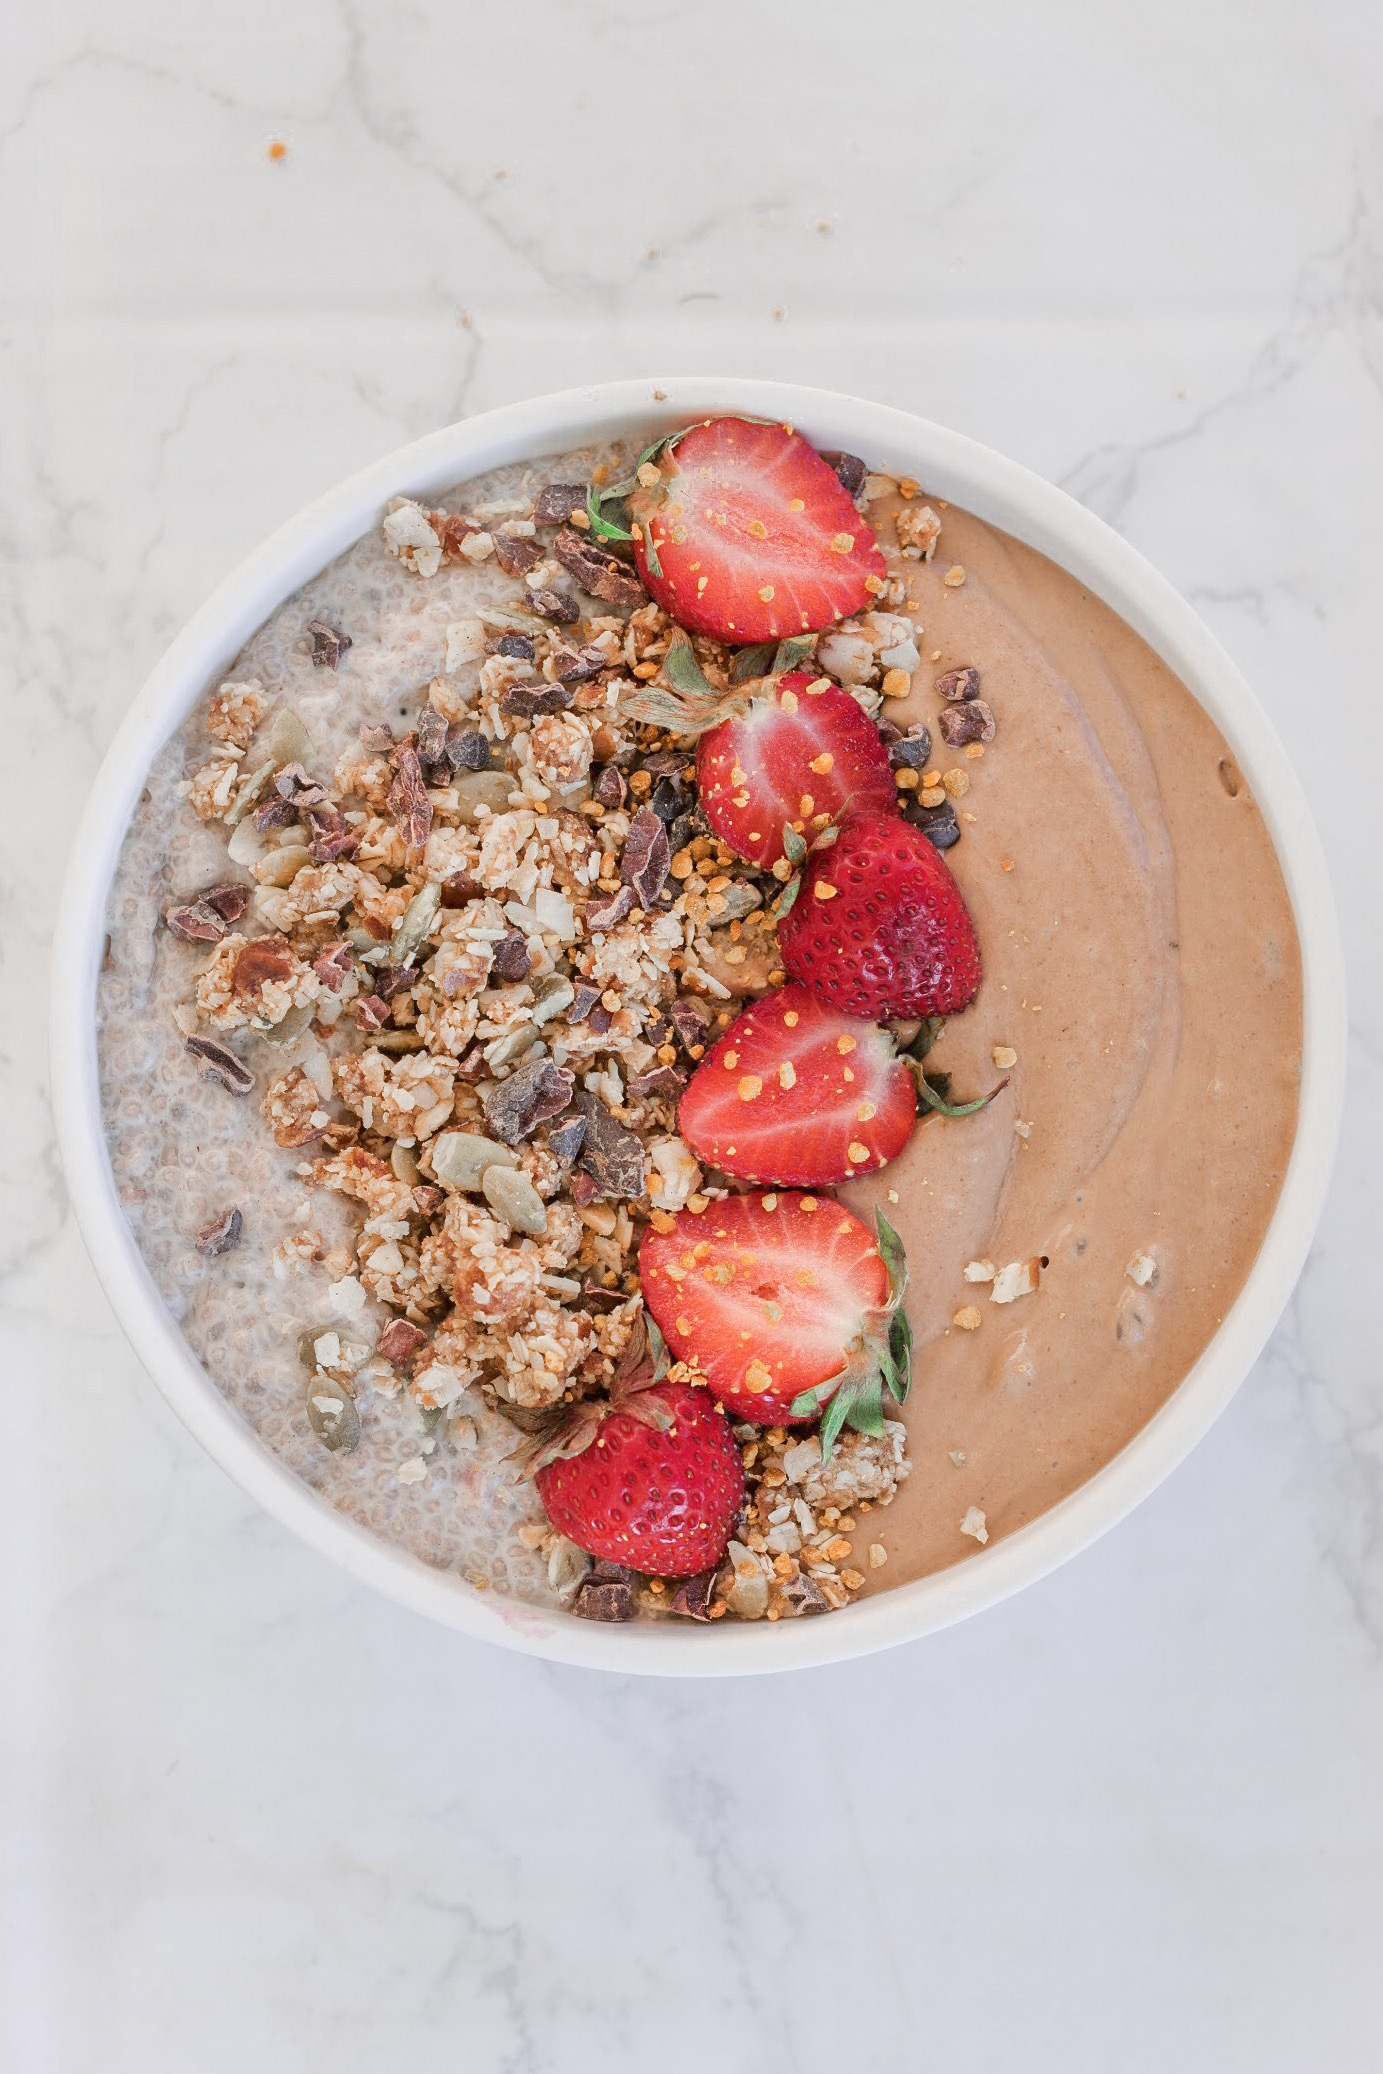 Recipe: Hormone-Balancing Chocolate Zucchini Smoothie Bowl